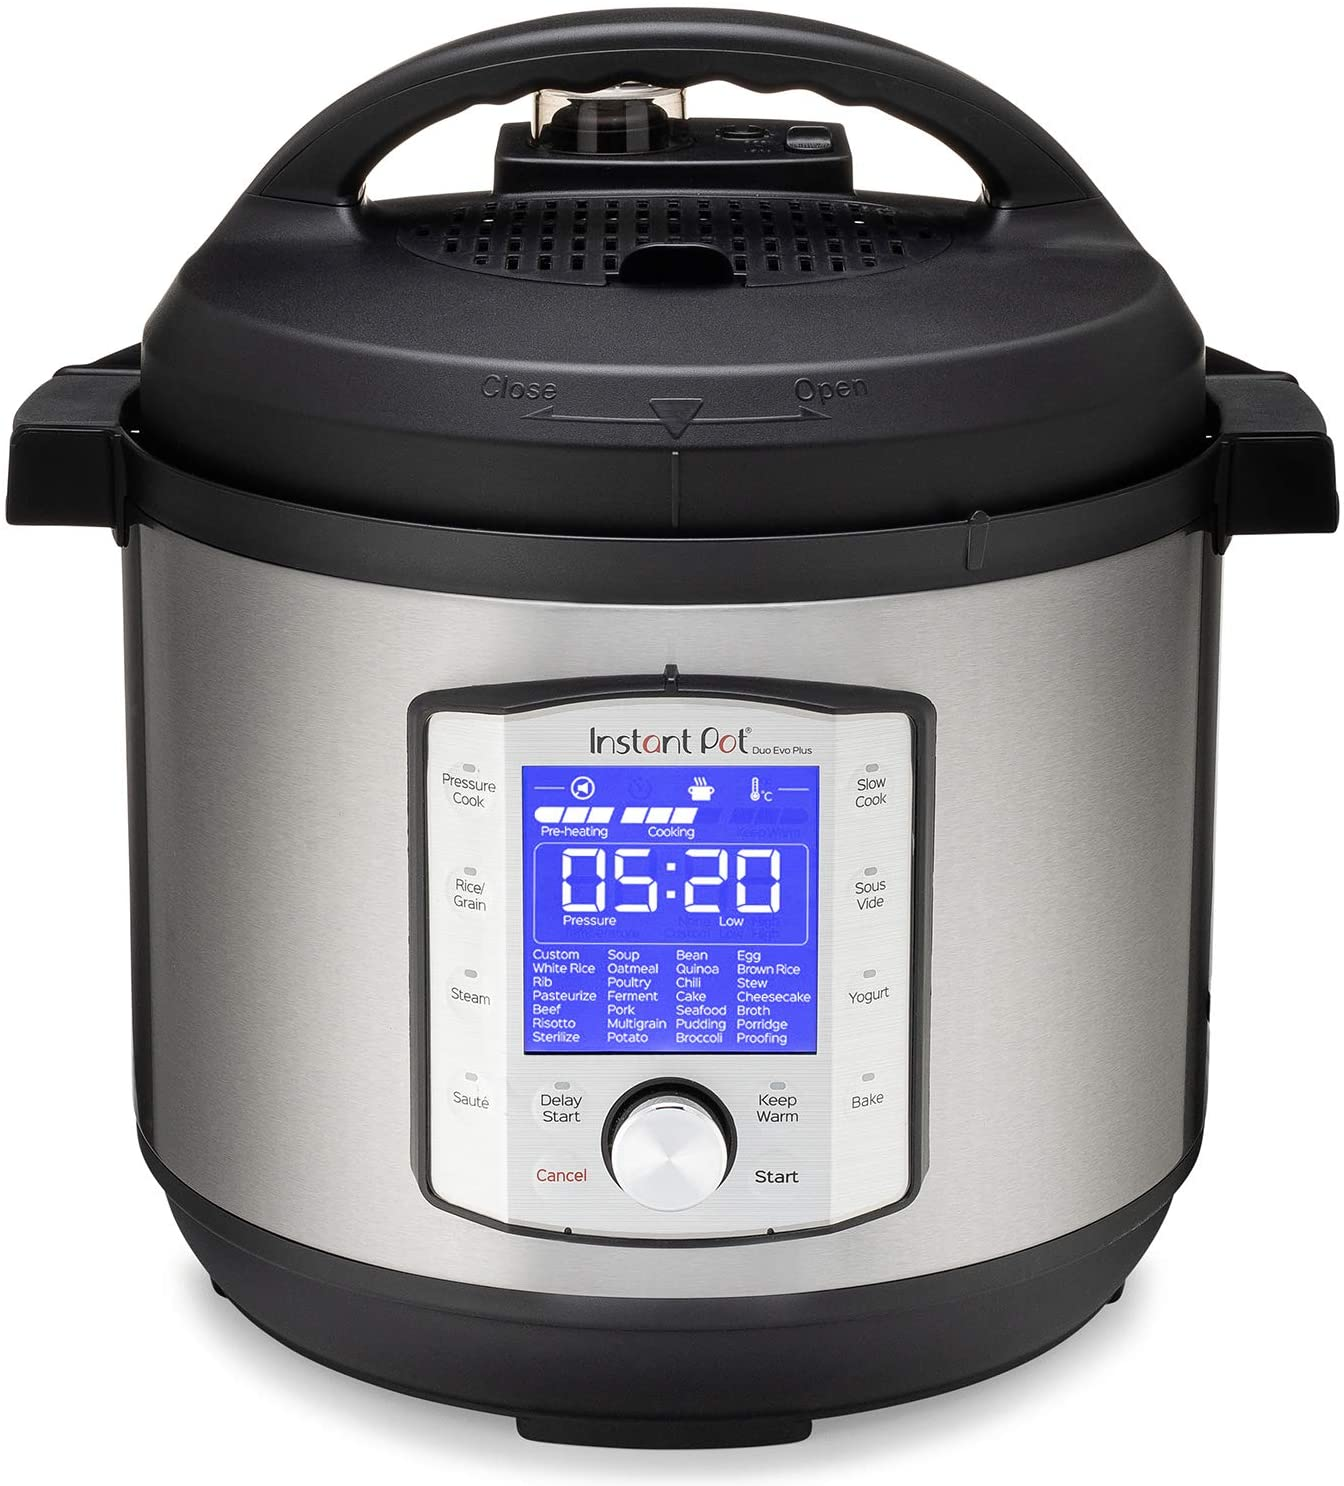 Instant Pot Duo 9 in 1, 6 Qt, $70 and other options available